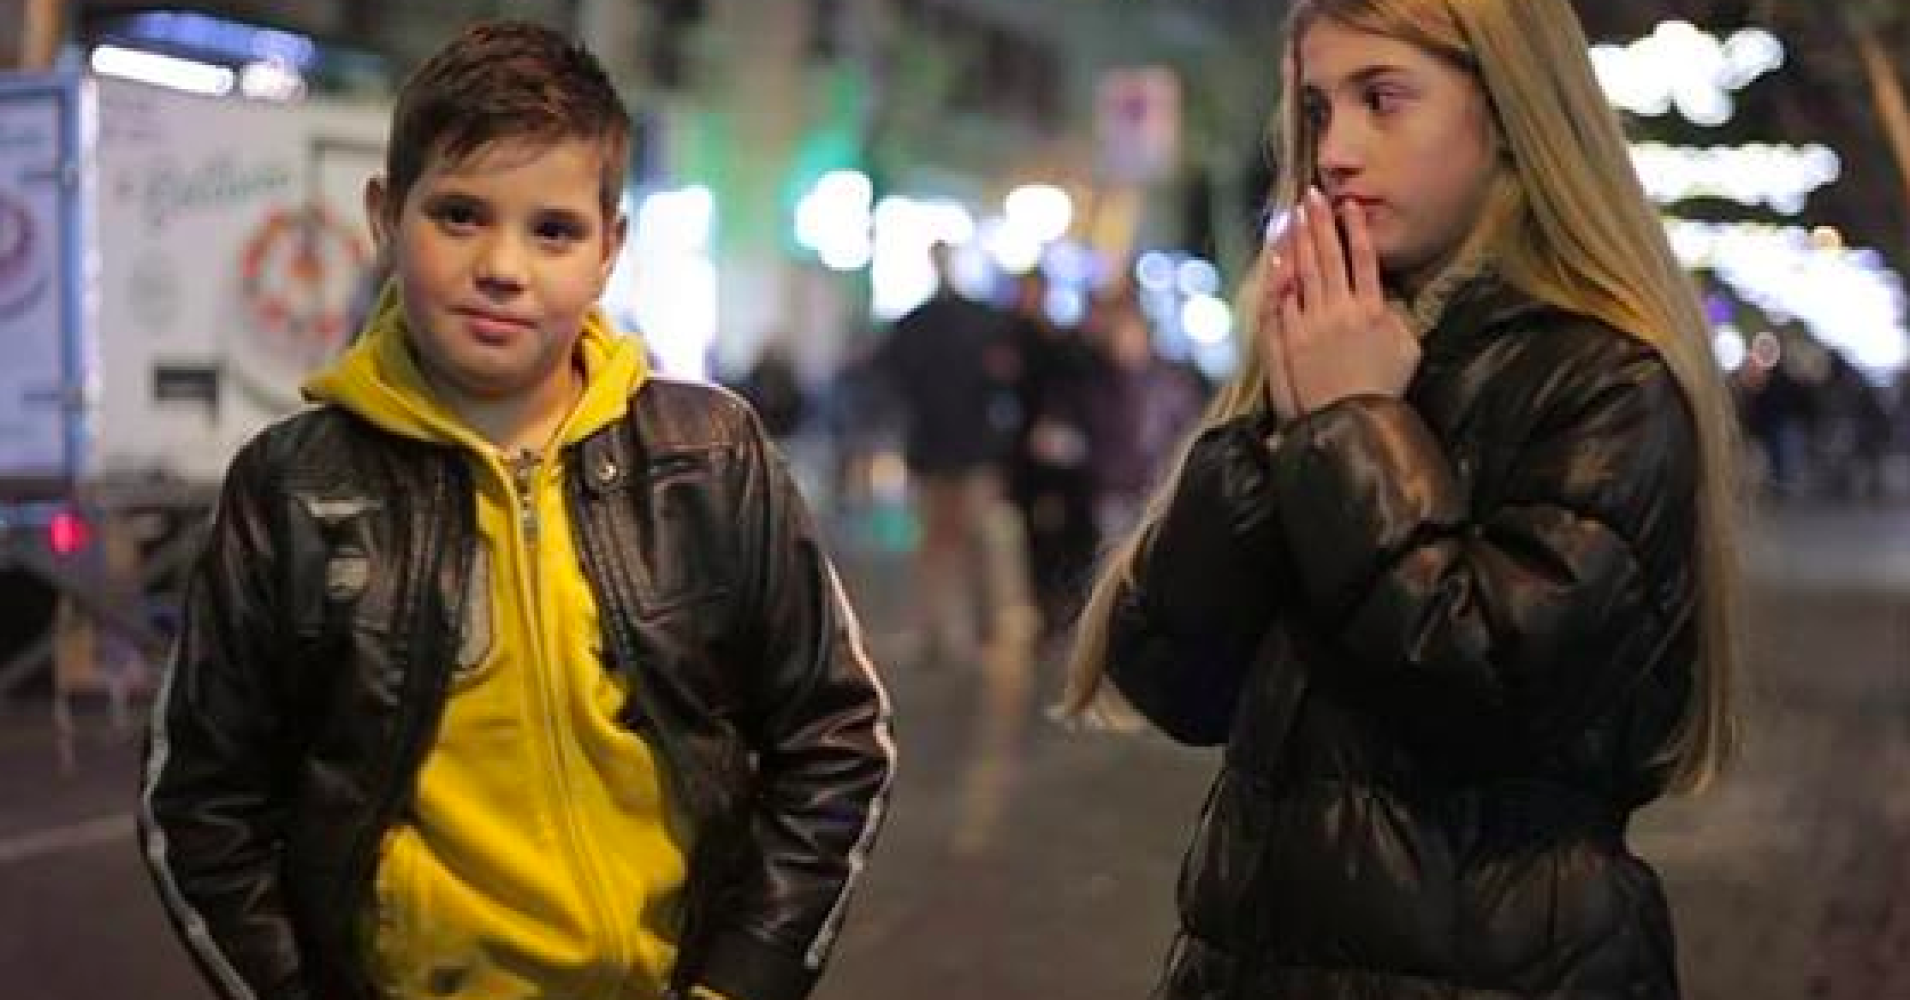 Watch When Asked to Slap a Girl, Young Boys Give Powerful Response video